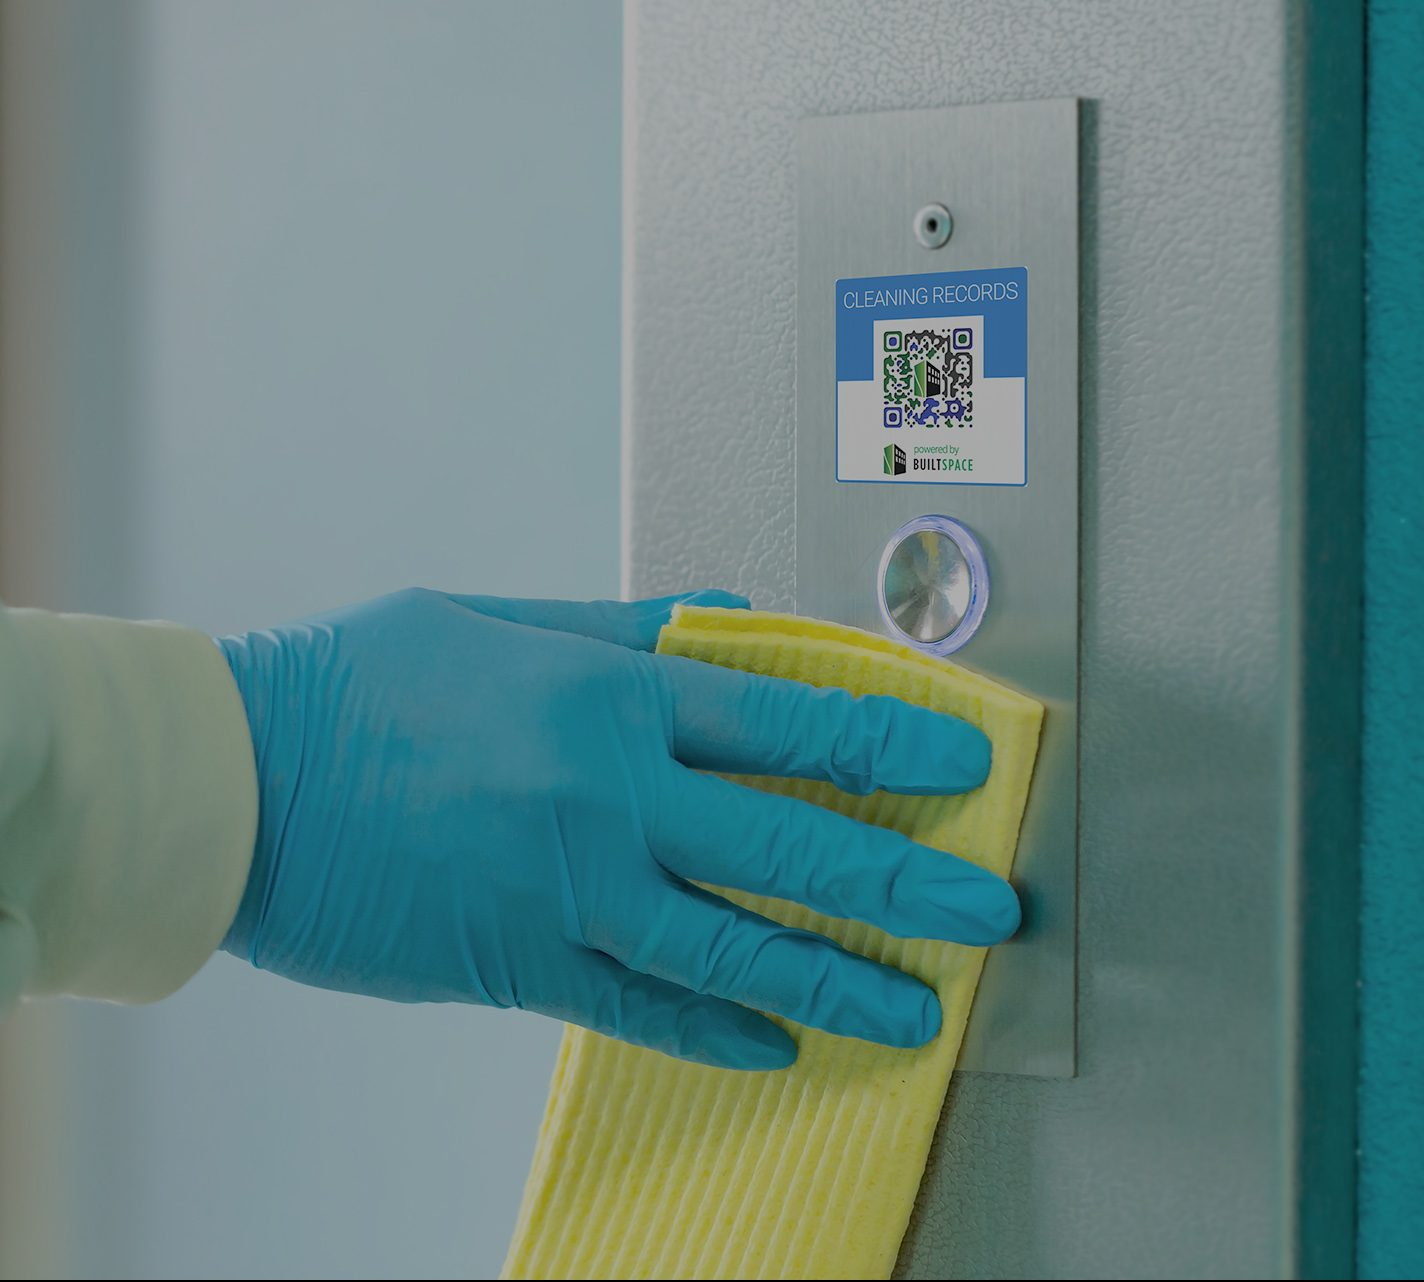 BuiltSpace QR code showing enhanced cleaning